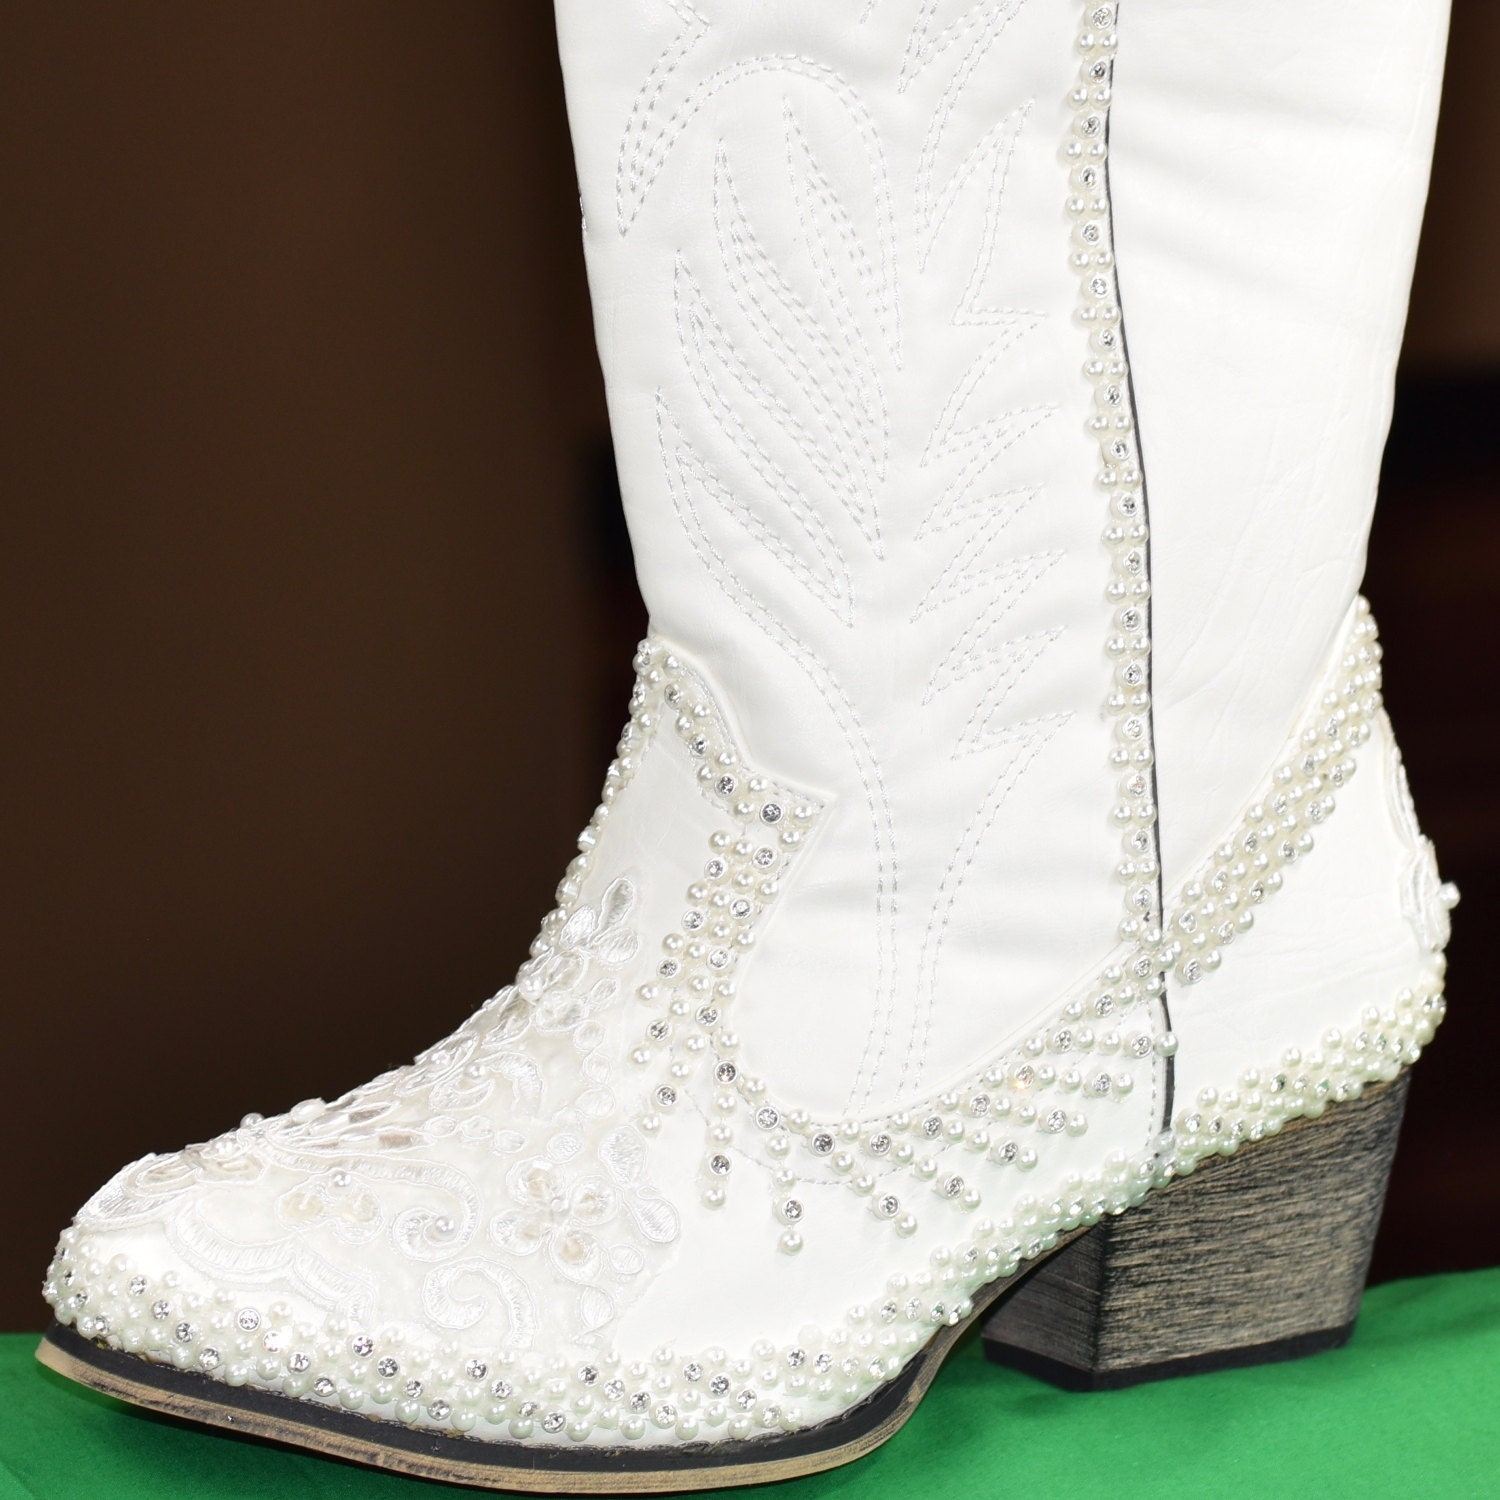 White or Ivory Wedding Boots Bridal Rubber Sole Comfortable Lace ...